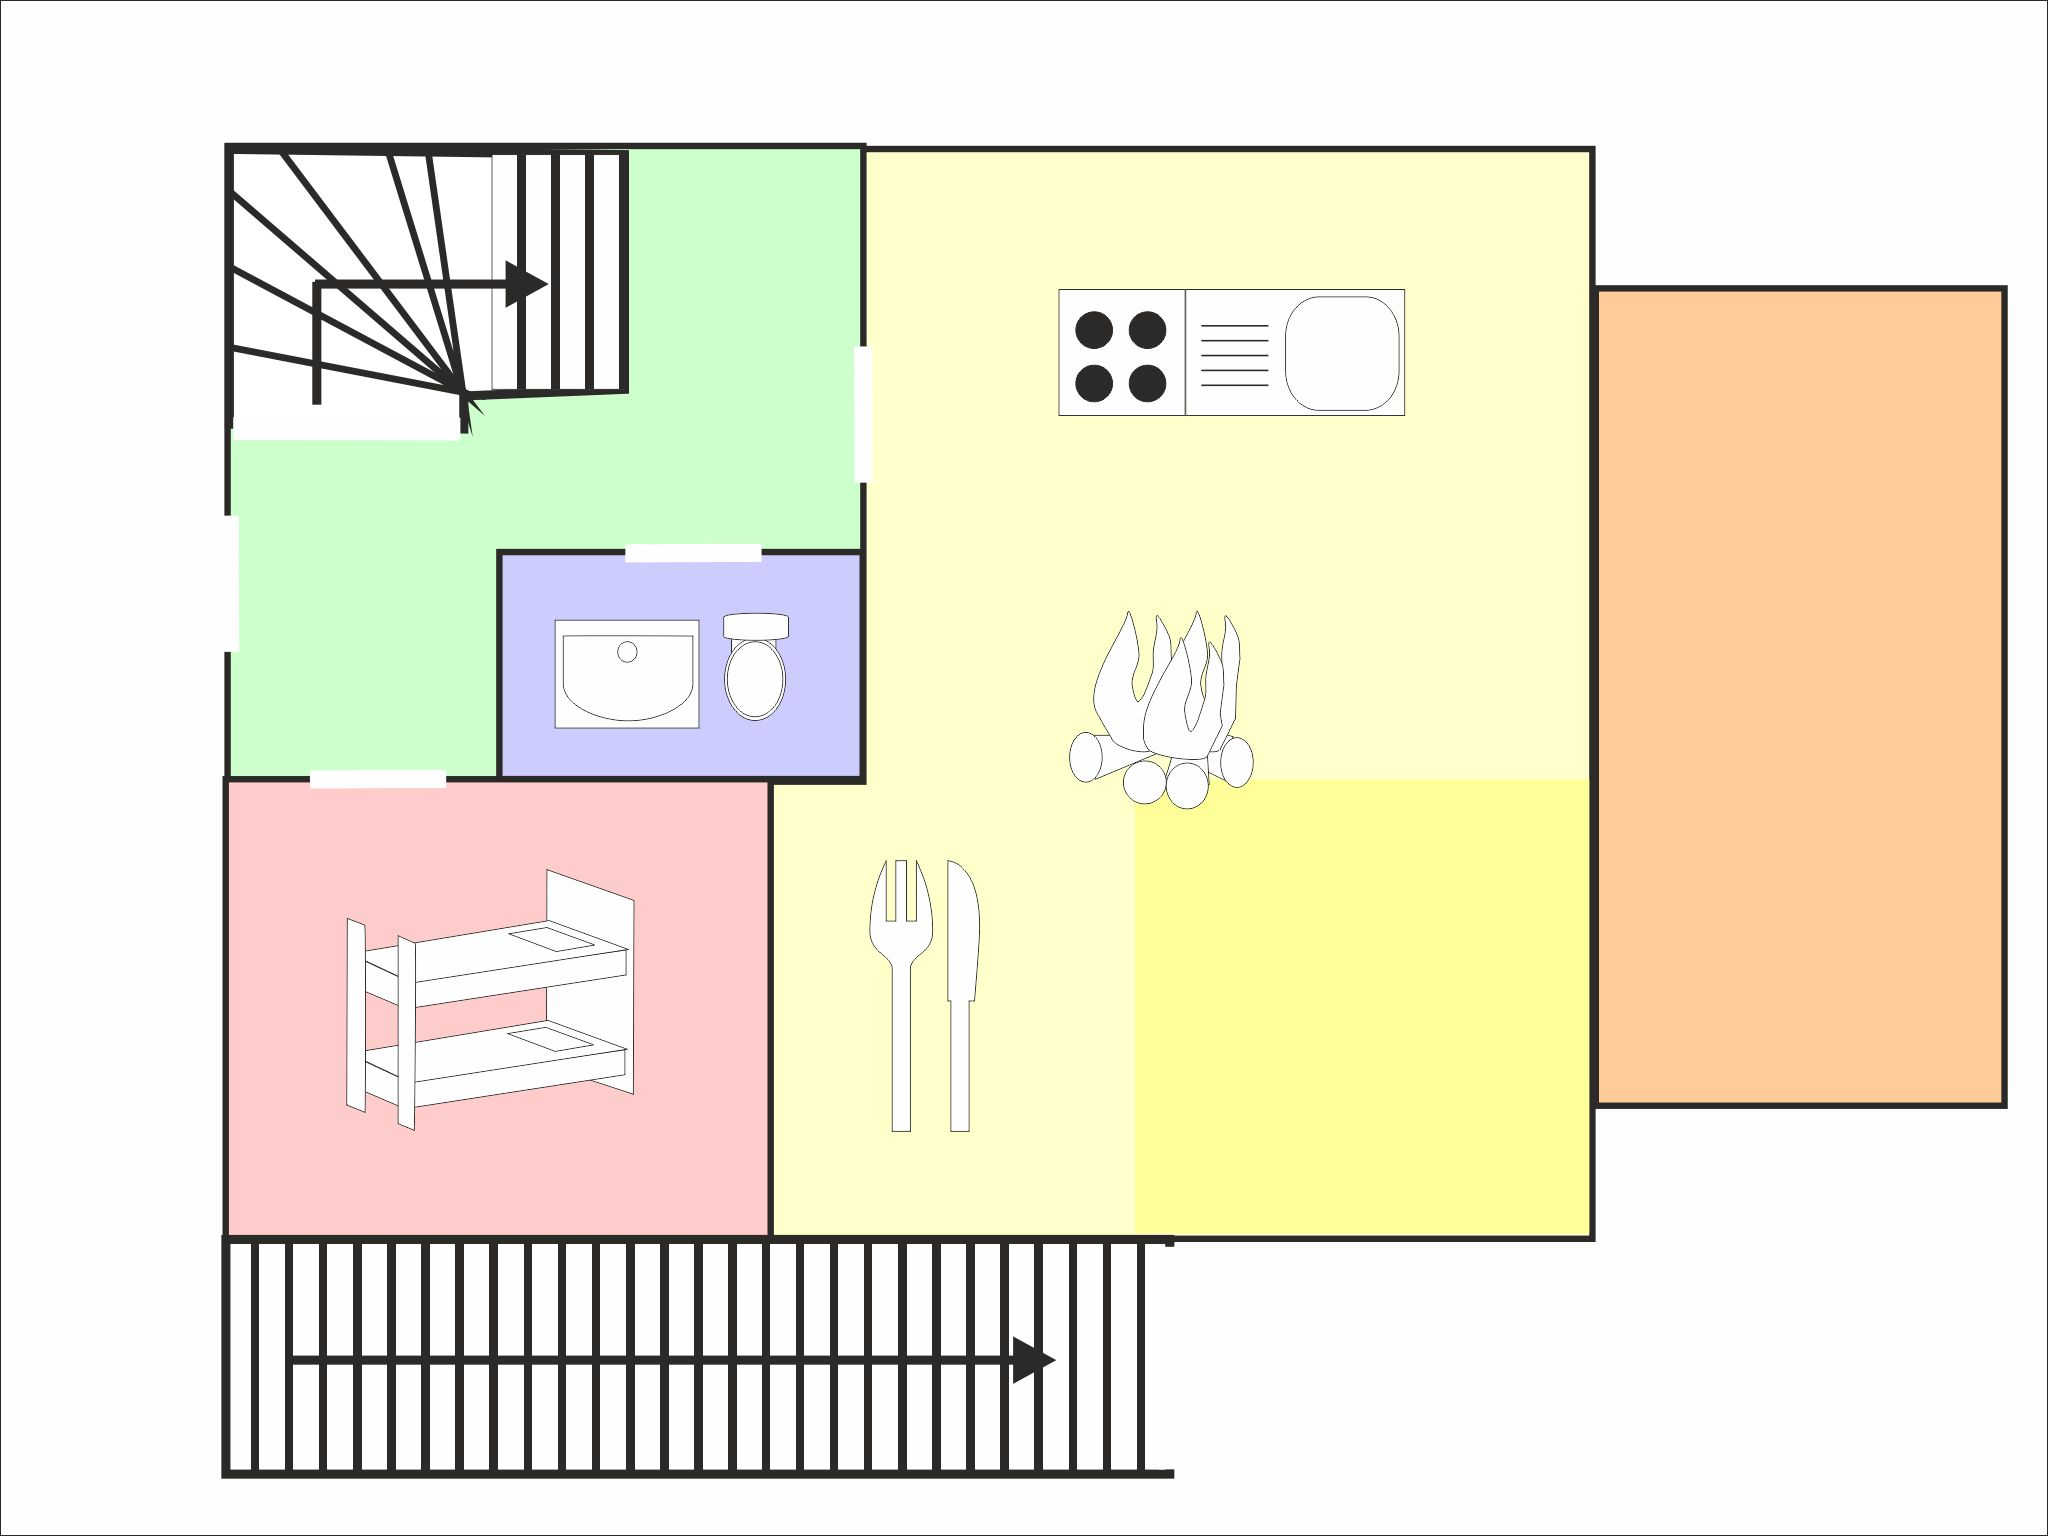 Pinzgau Lodge Leogang - floor plan - level 1